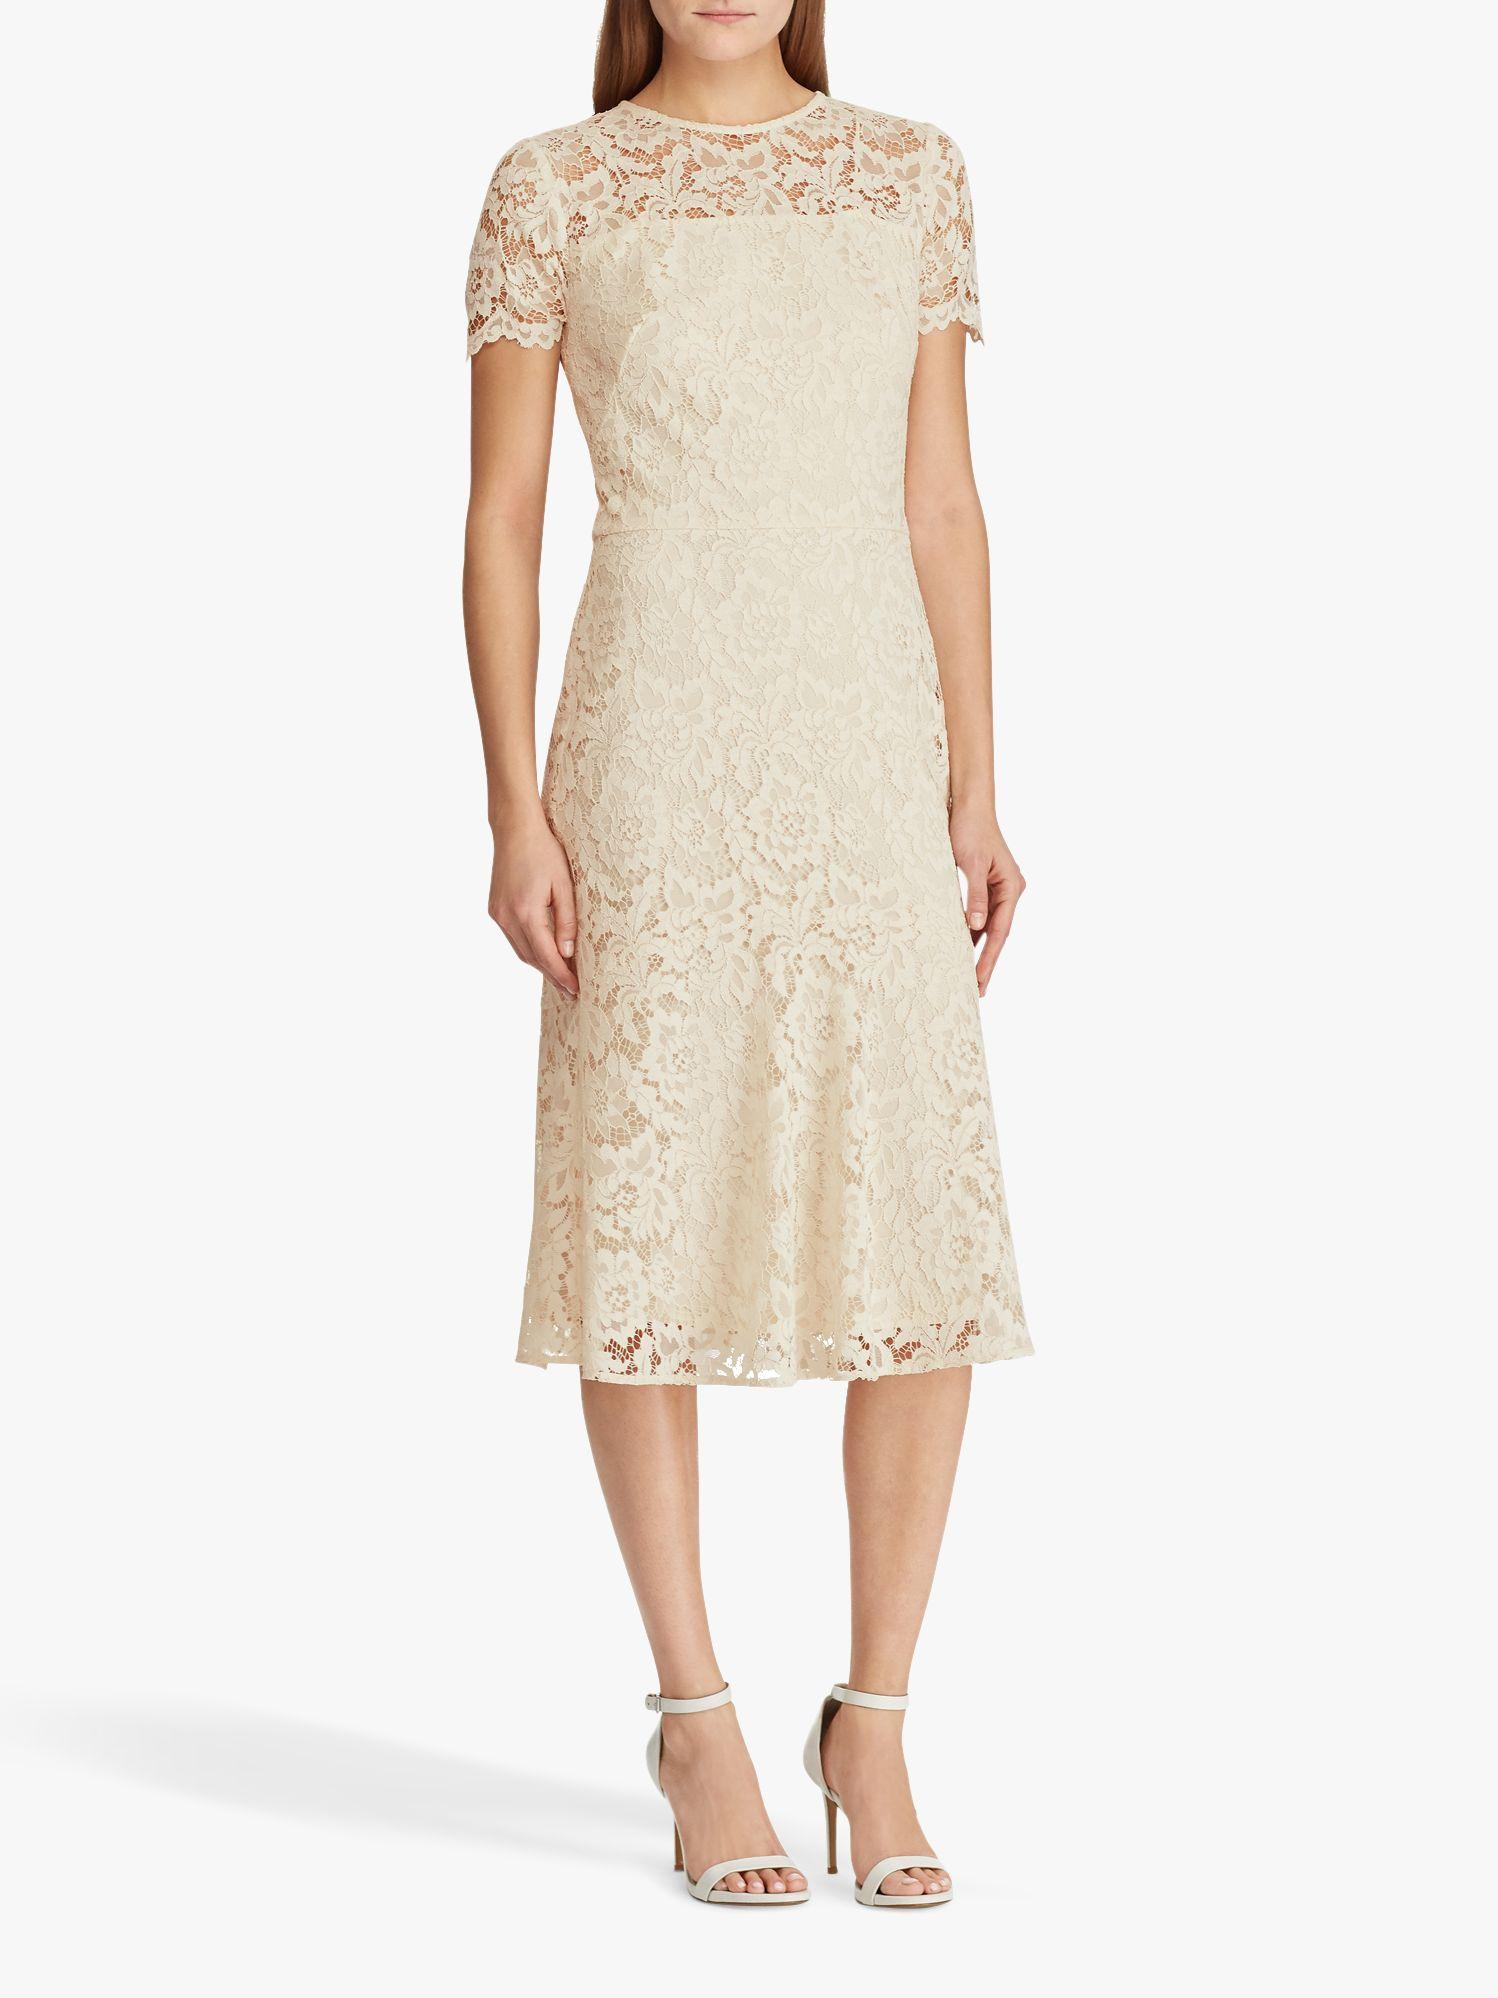 48309f00d1bba Ralph Lauren Lauren Loki Lace Cocktail Dress in Natural - Lyst